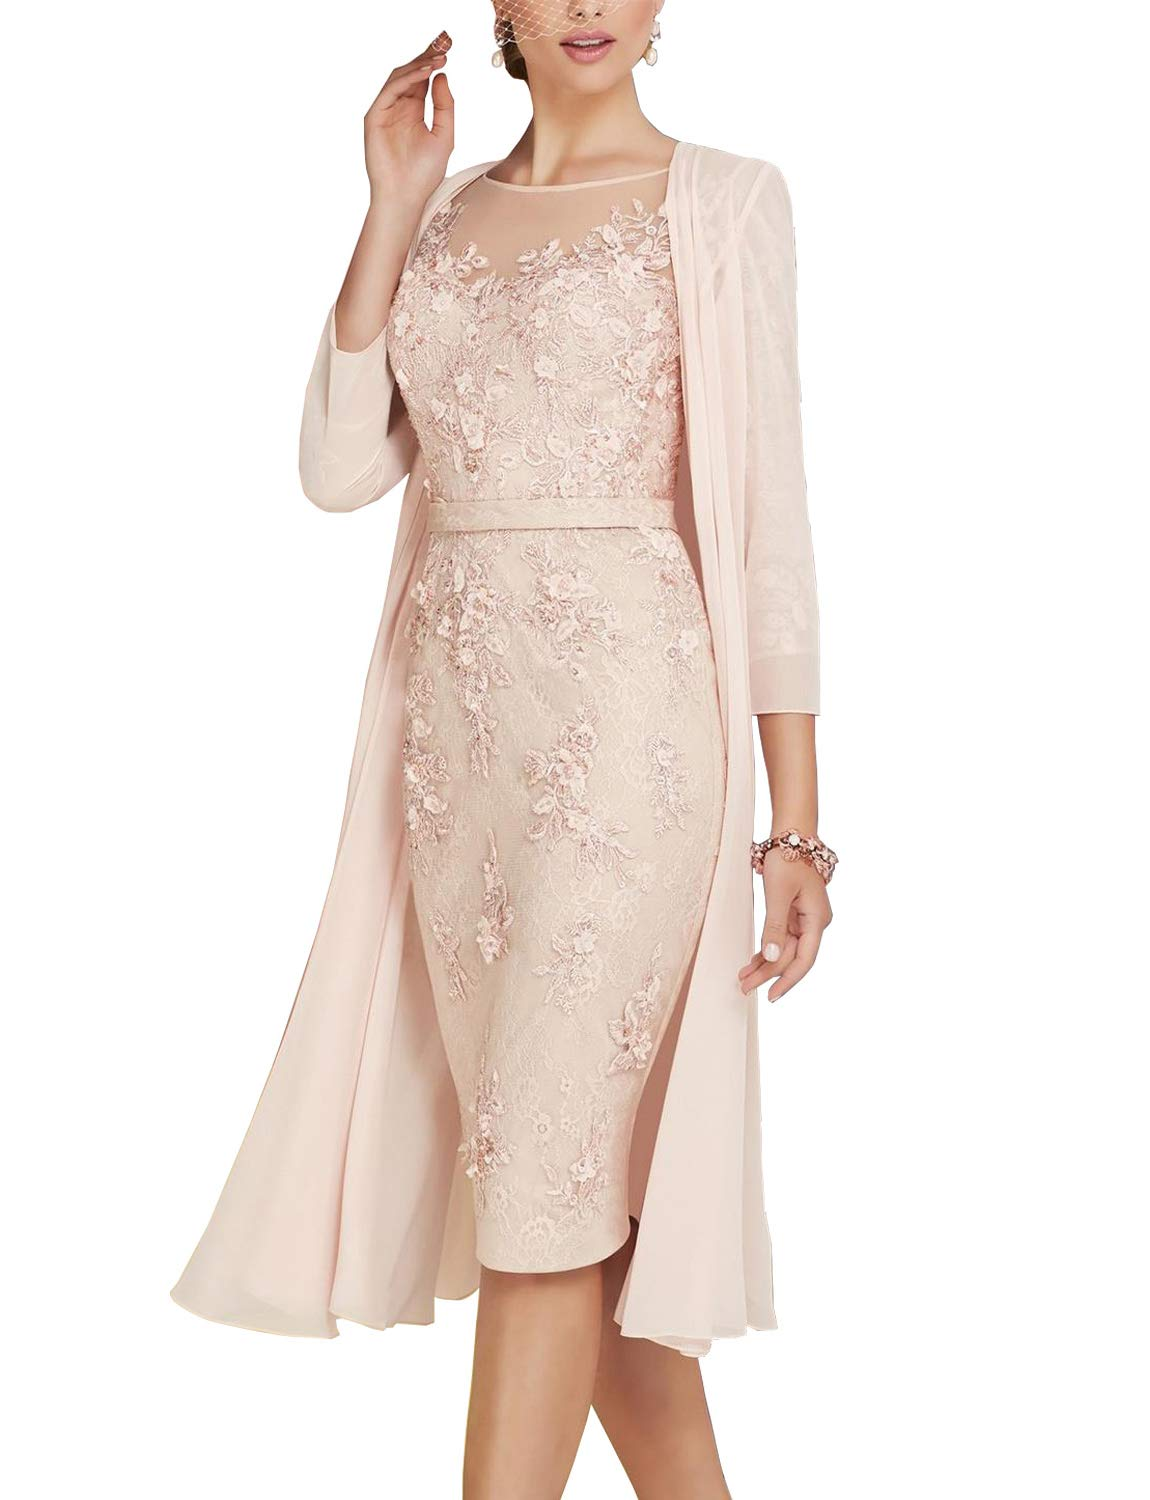 Newdeve Lace Floral Applique Mother of The Bride Dresses Cocktail Knee Length with Jacket